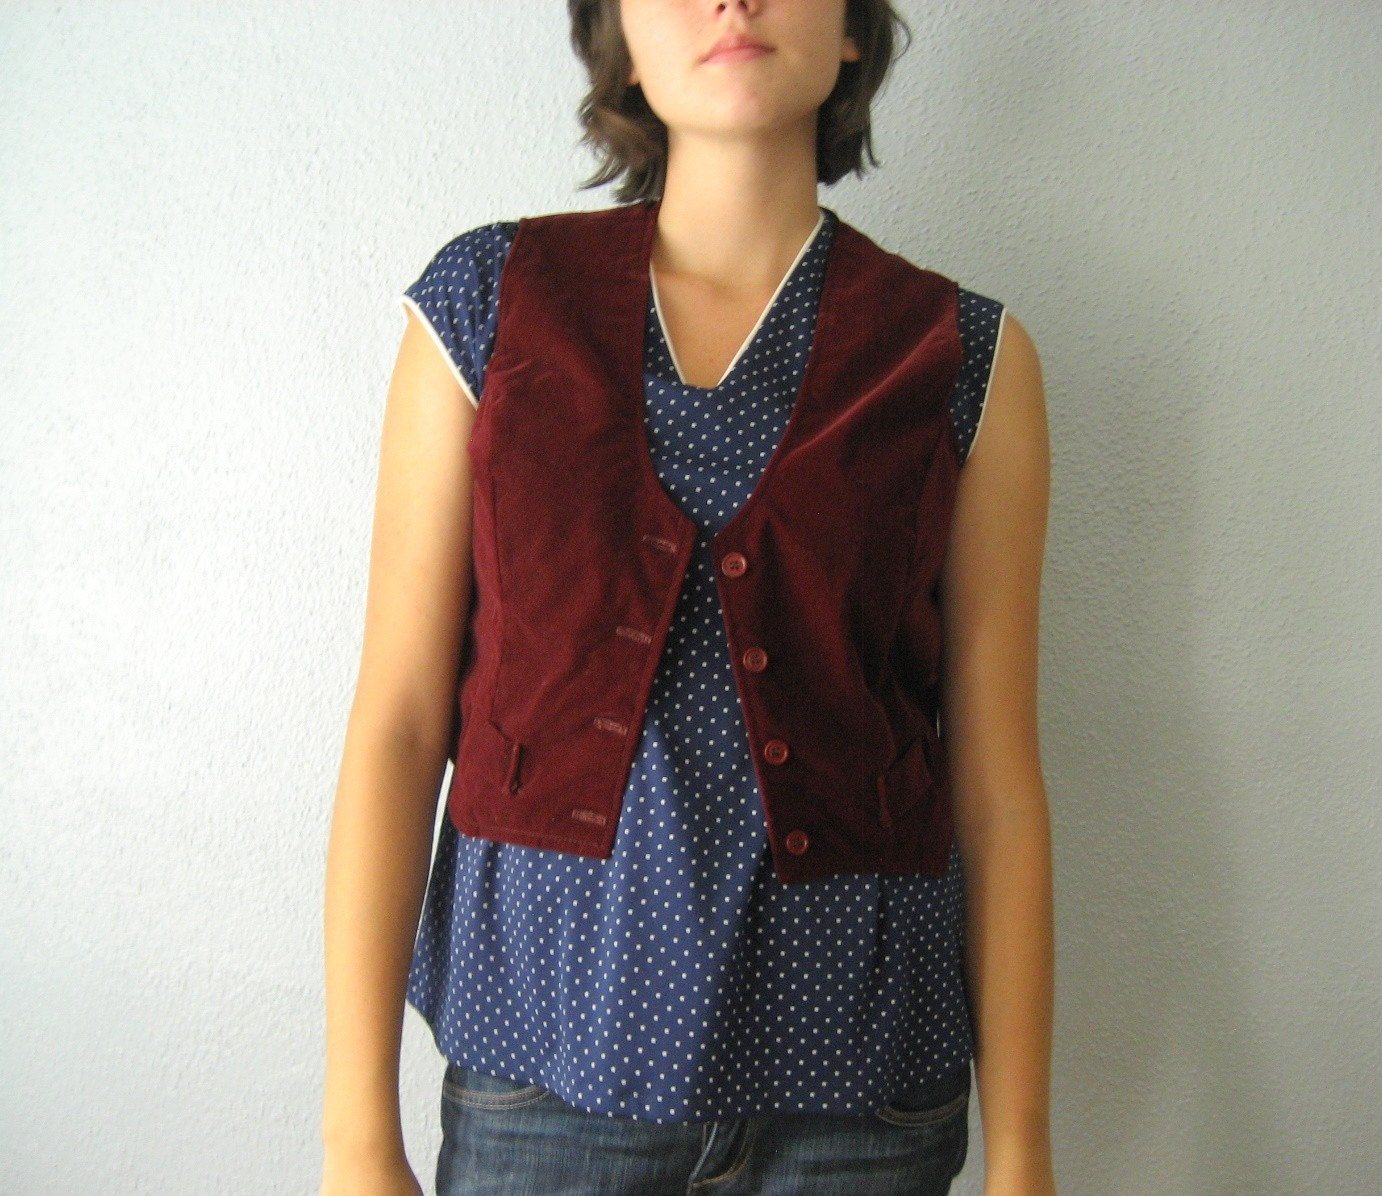 The Joni Mitchell Vest